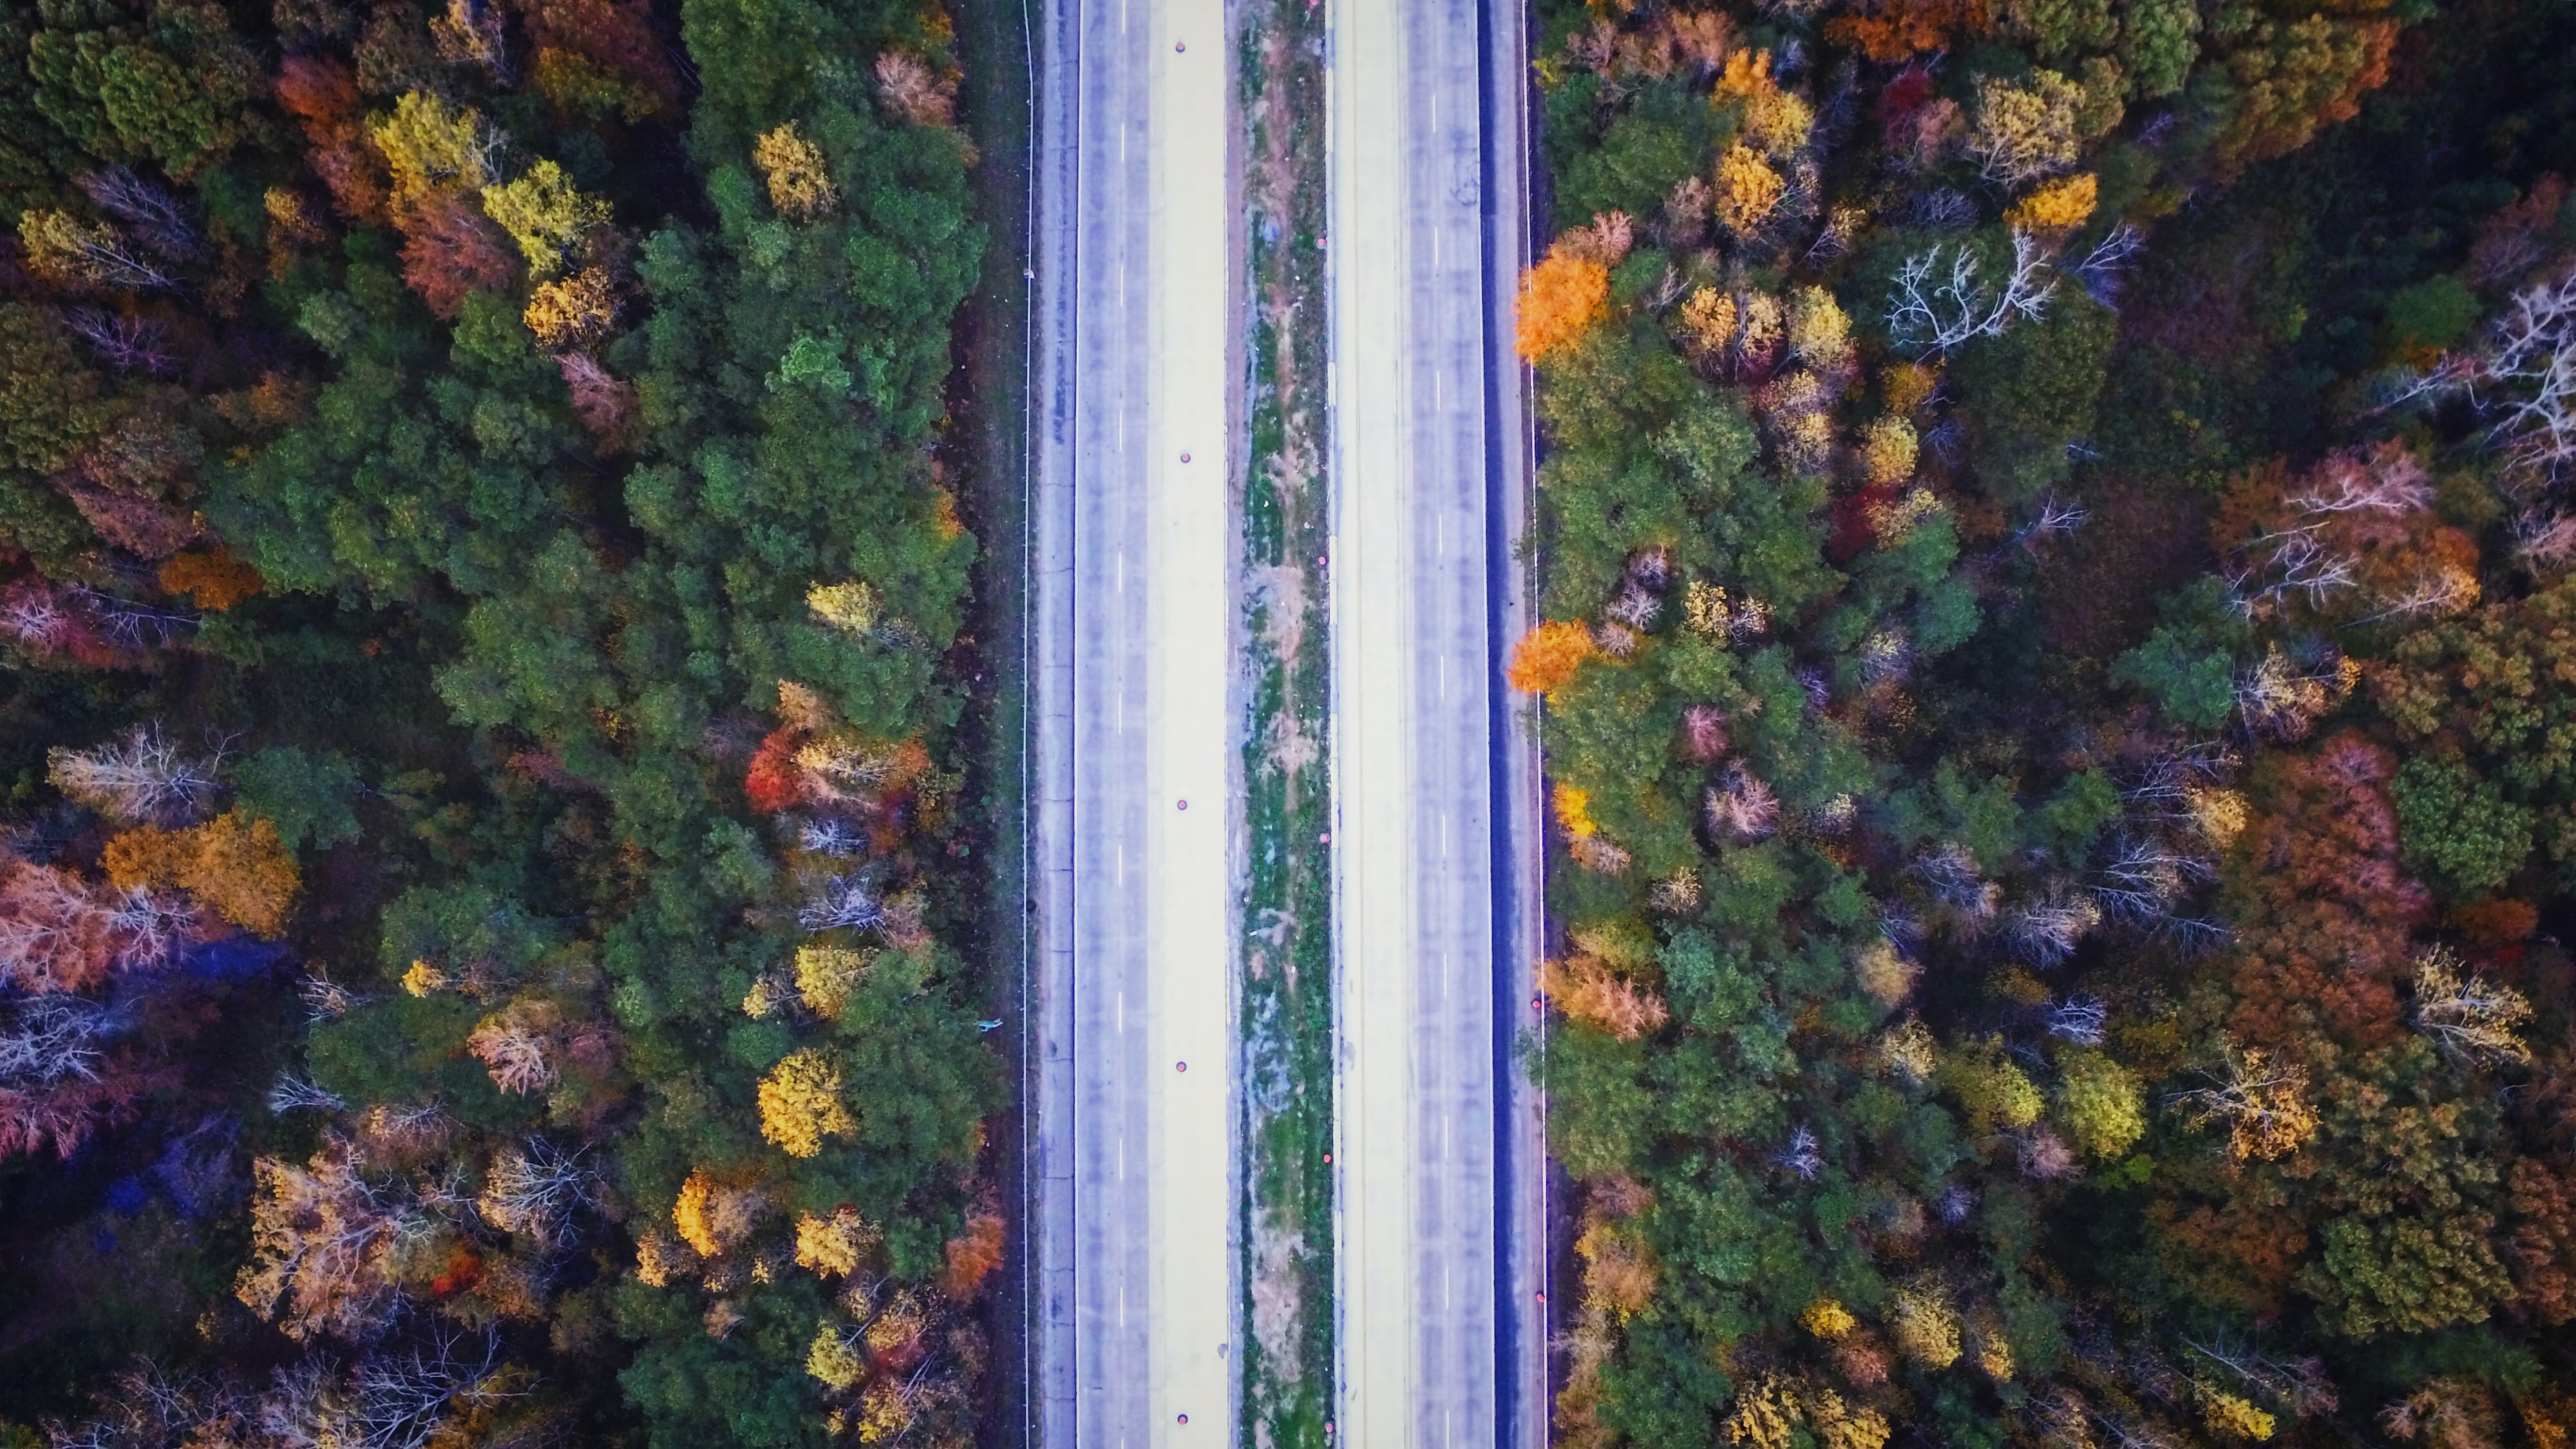 aerial photography of road between trees at daytime